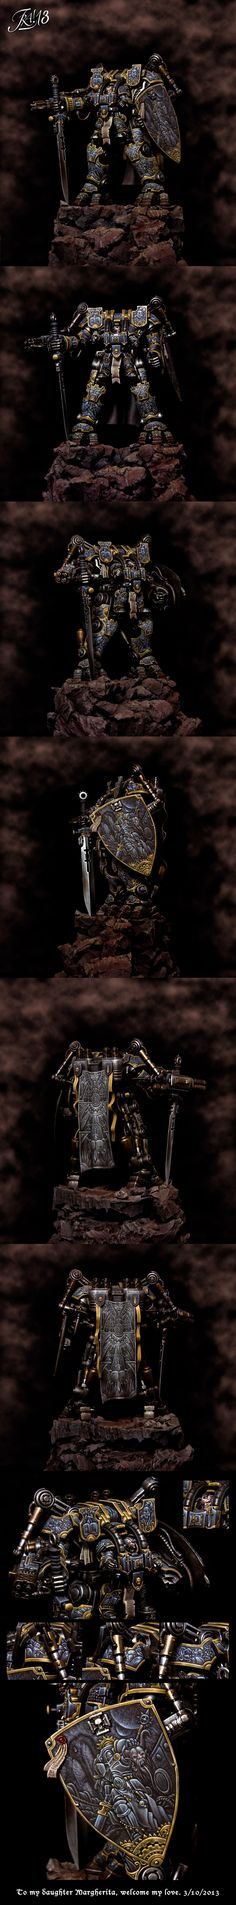 Manufacturer  Category  Competition   FEATURED AUCTION    Dark Sword Miniature Male Mage Easley Collection #4105 by superbug983 Rating: 5.6 ...